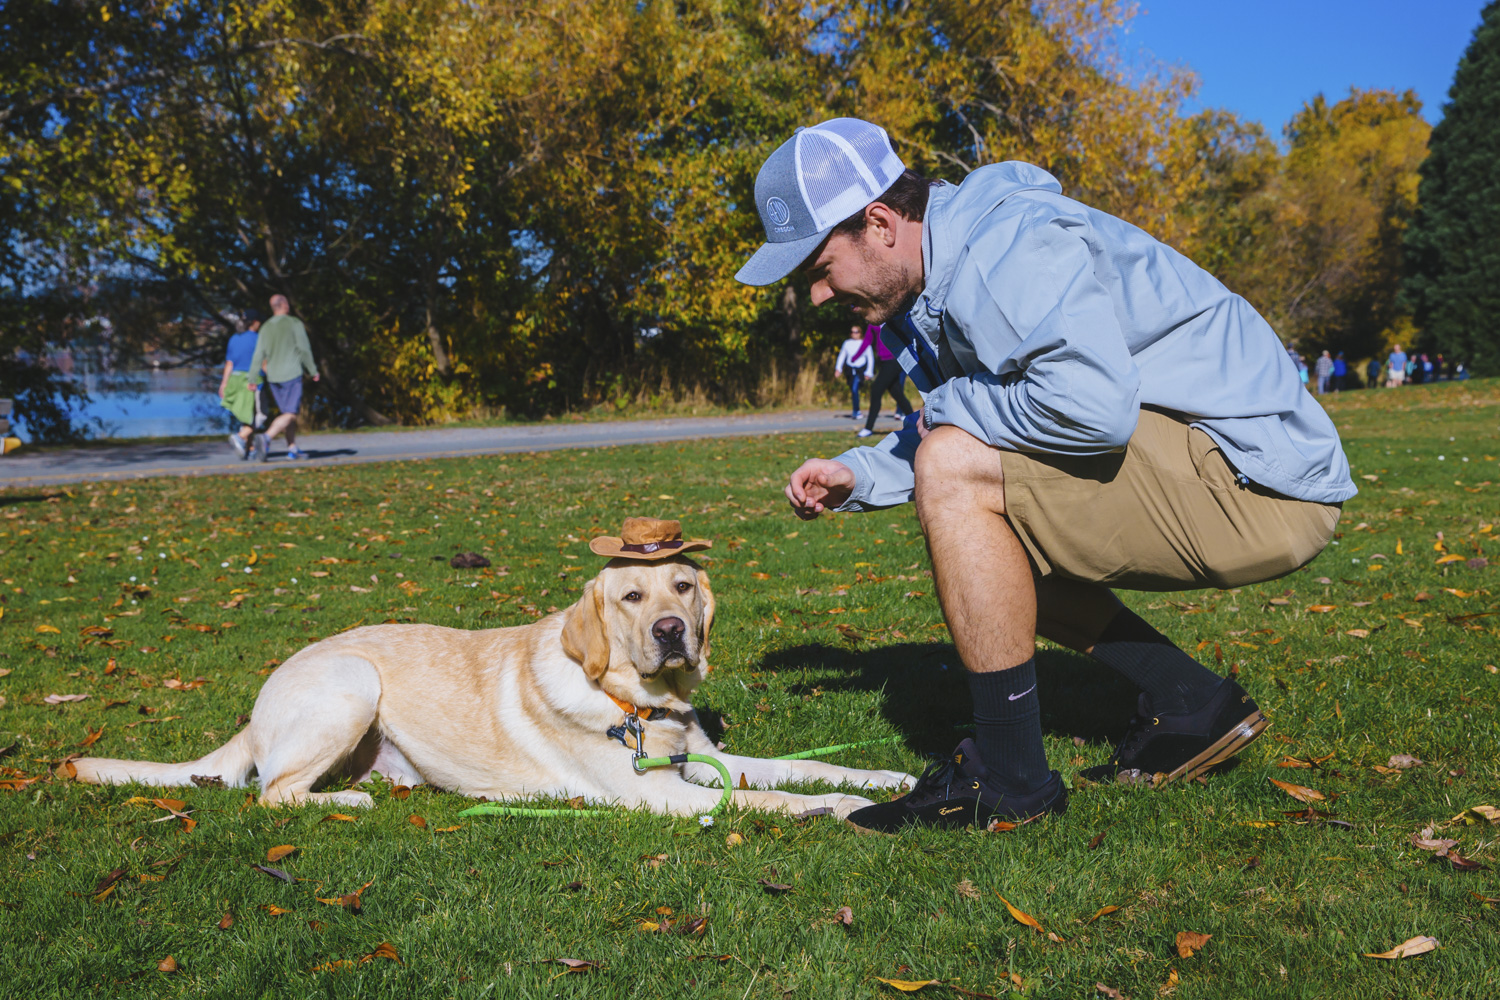 Benson is an 11 month old Labrador Retriever! Isn't he something else?! Benson was born in Maryland and moved cross country to settle down with his family in Issaquah. Benson likes zombies, playing in the rain, beef nibs, hiking Cougar Mountain, sitting on his butt, playing with friends in the park, car rides, peanut butter, watching TV, socks, slippers, and loves to chew. He dislikes baths, being ignored and when anyone is on the sofa and he's not. You can follow Benson's adventures on instagram @sillzygoeswest! The Seattle RUFFined Spotlight is a weekly profile of local pets living and loving life in the PNW. If you or someone you know has a pet you'd like featured, email us at hello@seattlerefined.com or tag #SeattleRUFFined and your furbaby could be the next spotlighted! (Image: Sunita Martini / Seattle Refined).